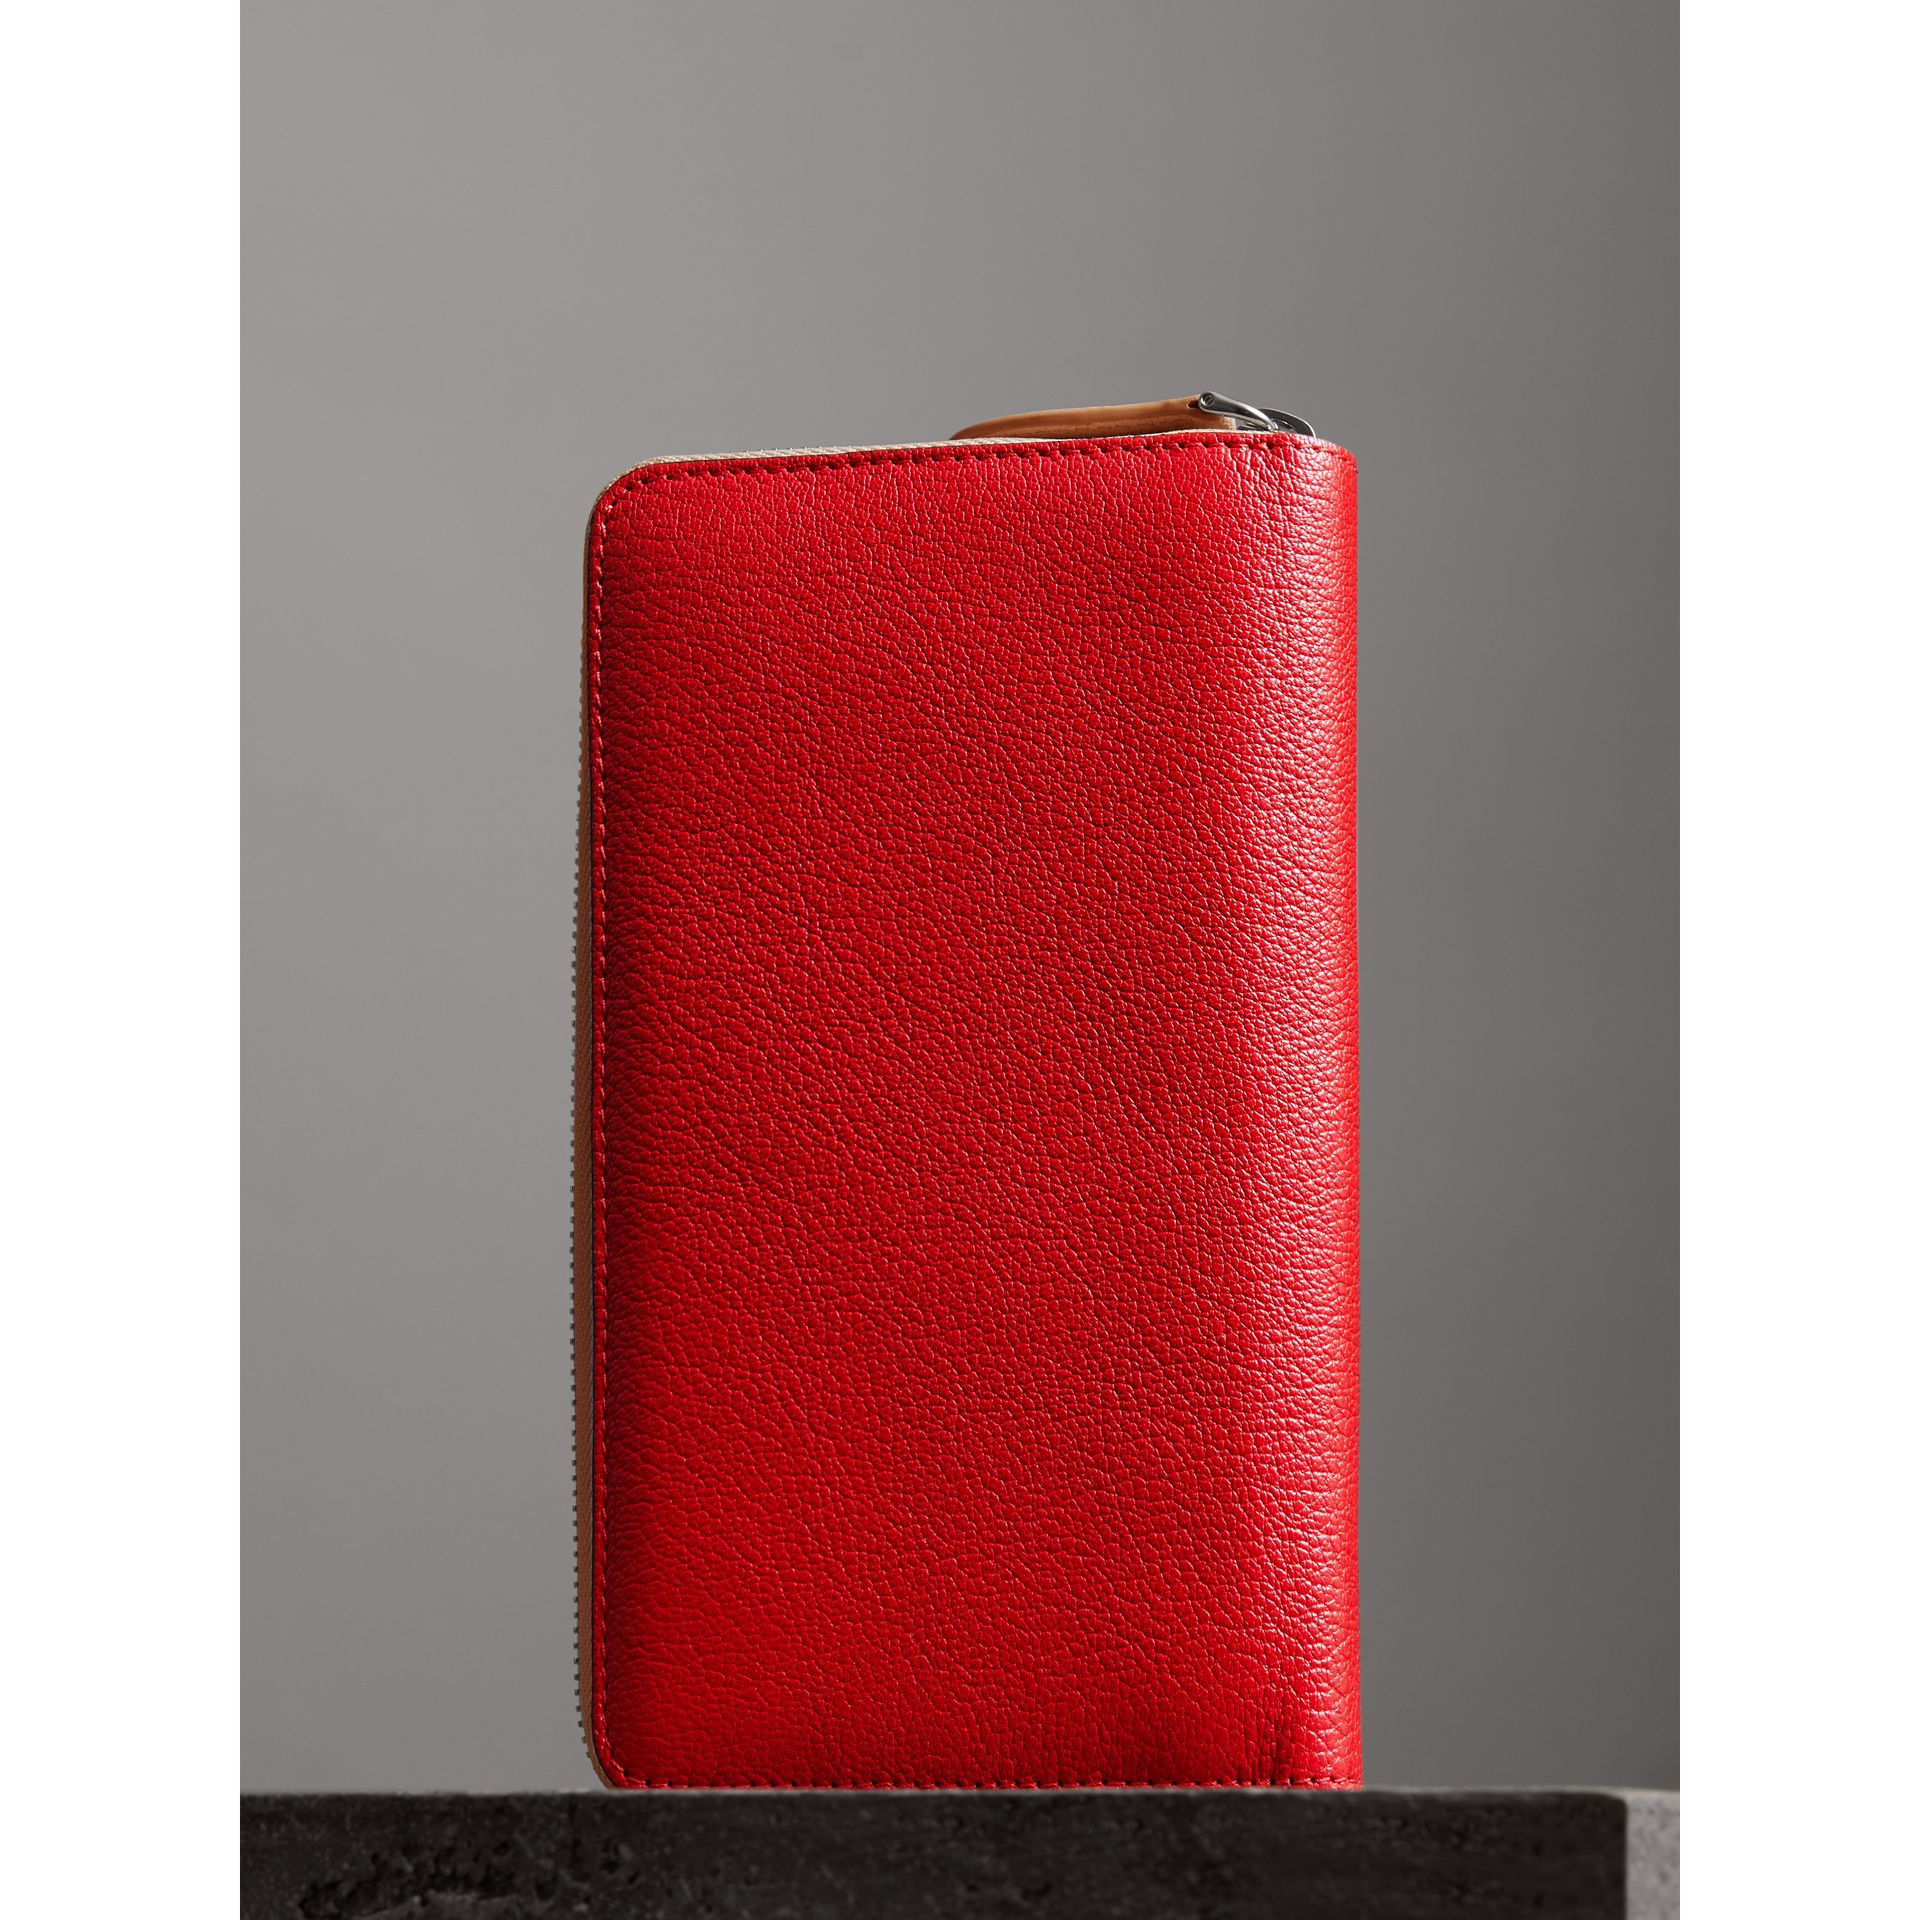 Two-tone Leather Ziparound Wallet in Bright Red - Men | Burberry Canada - gallery image 2